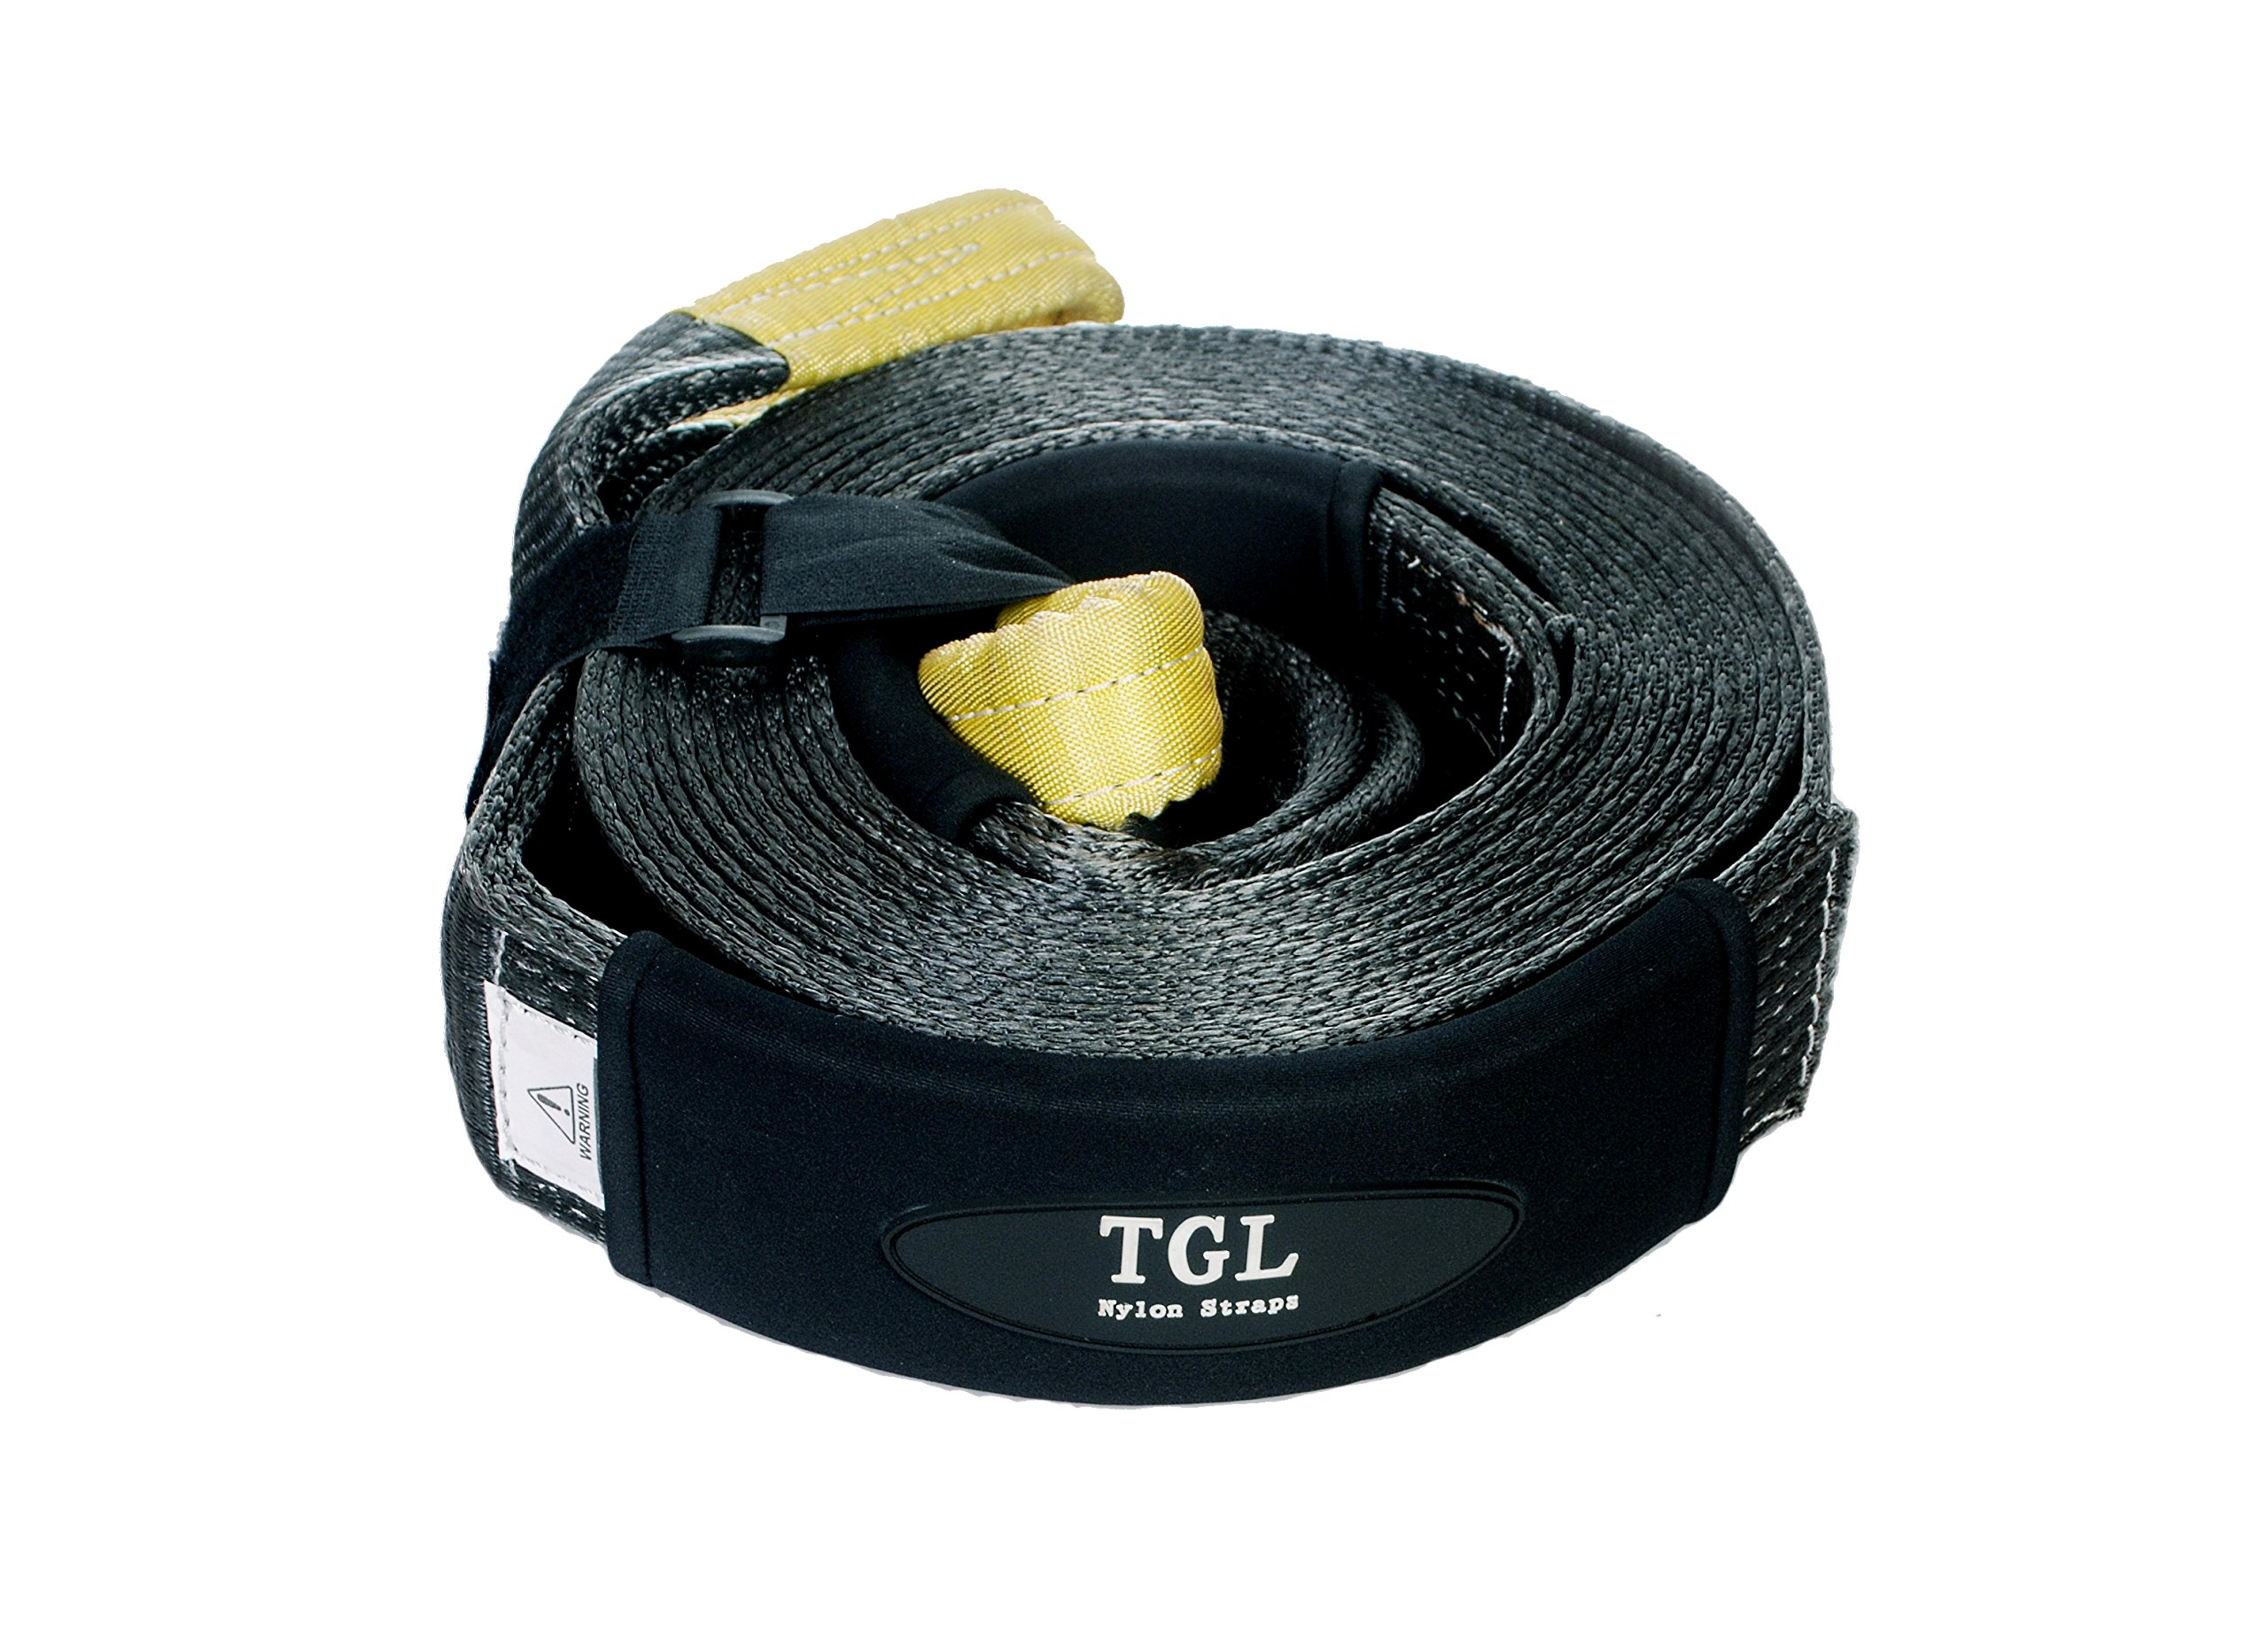 TGL 3 inch, 30 Foot Nylon Recovery Strap, Tow Strap 24,000 Pound Capacity by TGL